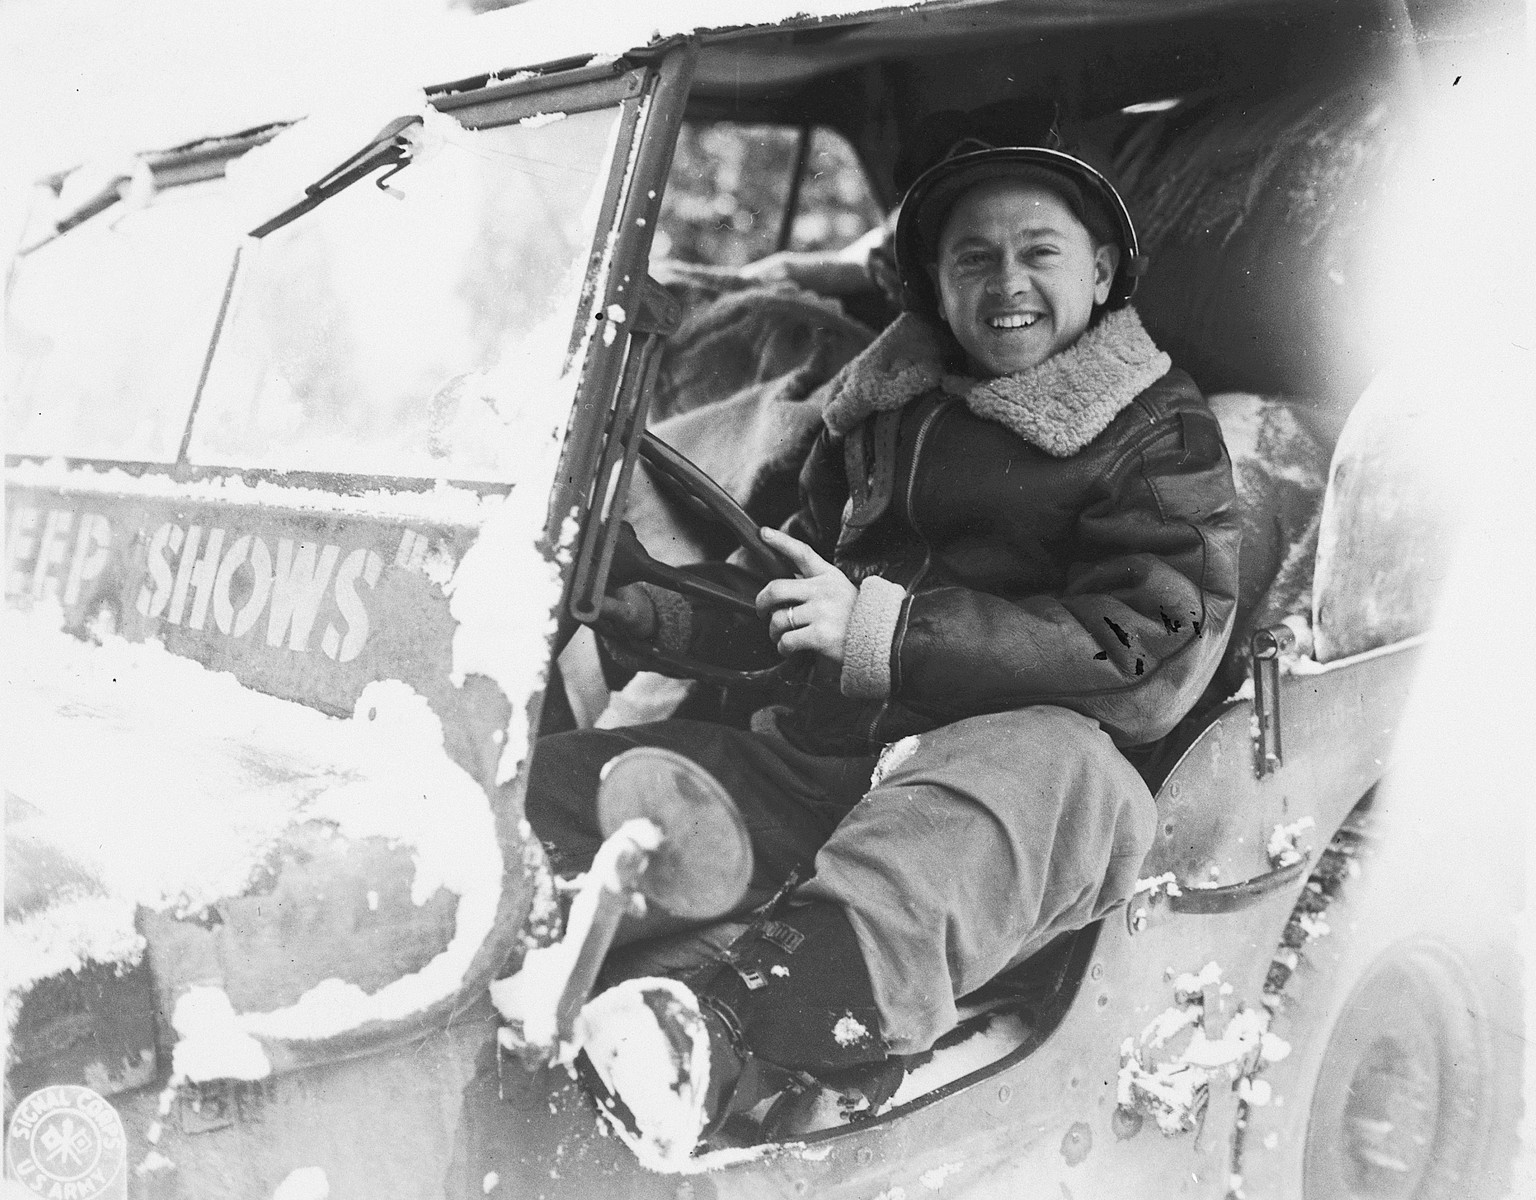 Actor Mickey Rooney poses in a military jeep during his visit to the ETO (European Theatre of Operations).